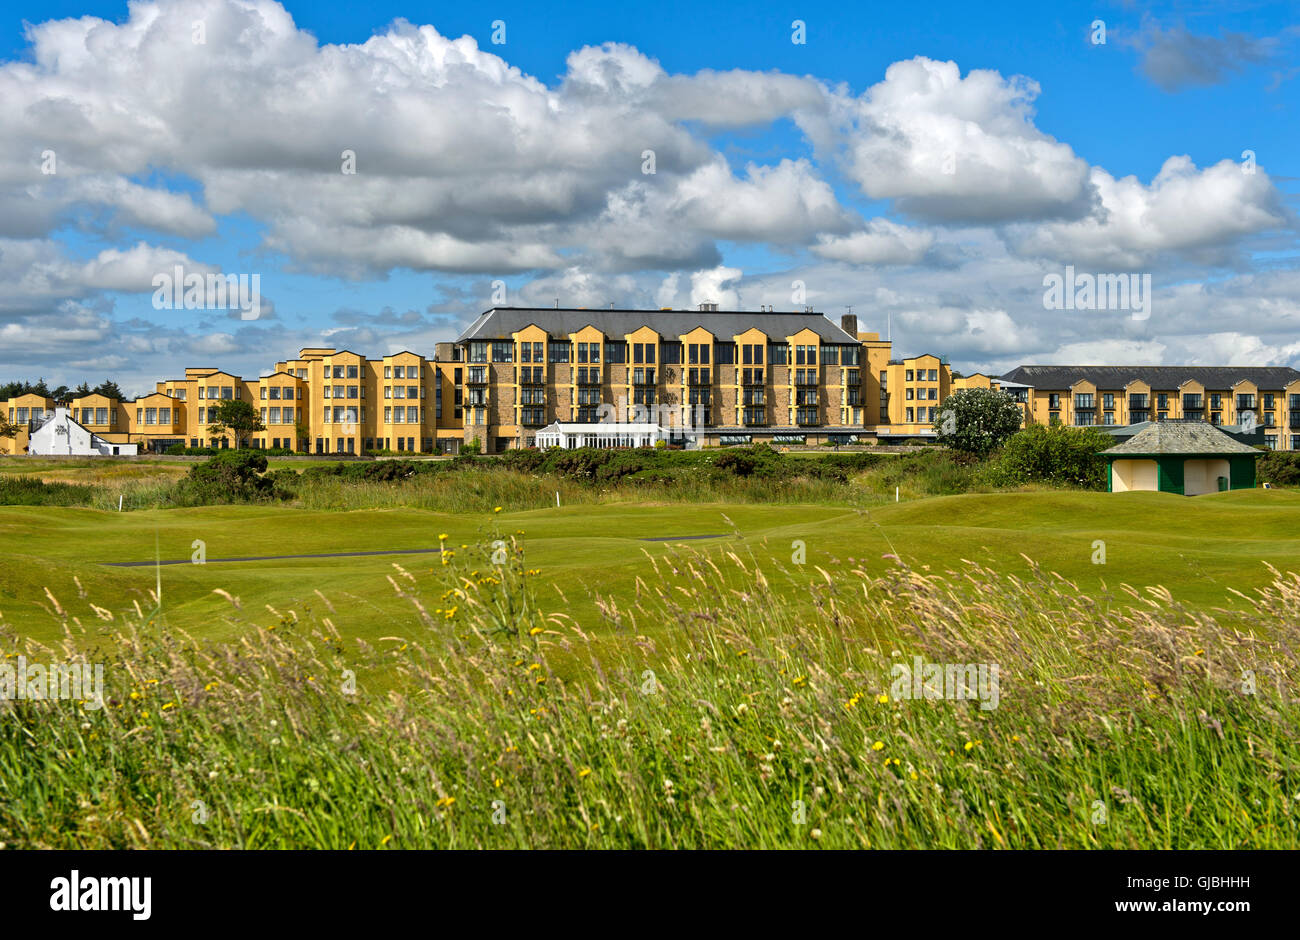 Old Course Hotel at the Old Course, Golf course St Andrews Links, St Andrews, Fife, Scotland, Great Britain - Stock Image